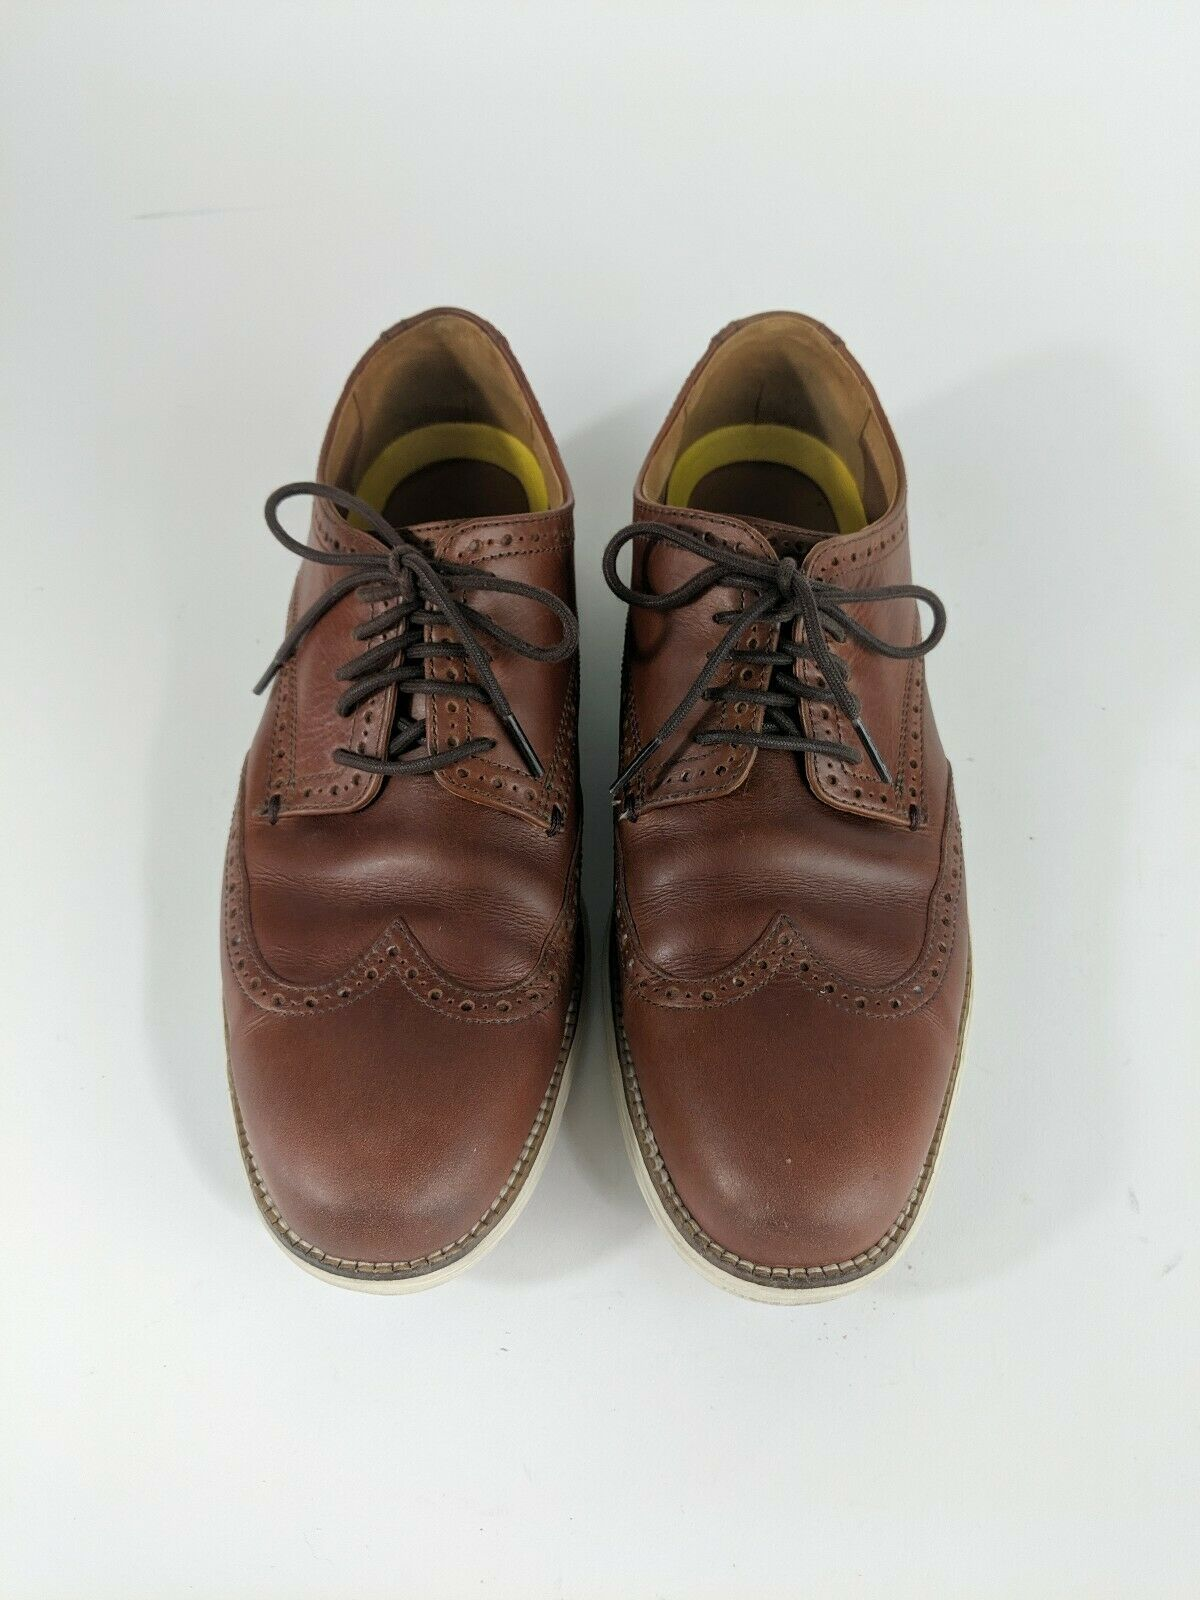 Cole Haan Original Grand Wingtip Oxford Chestnut Brown Size 10 Style C22793